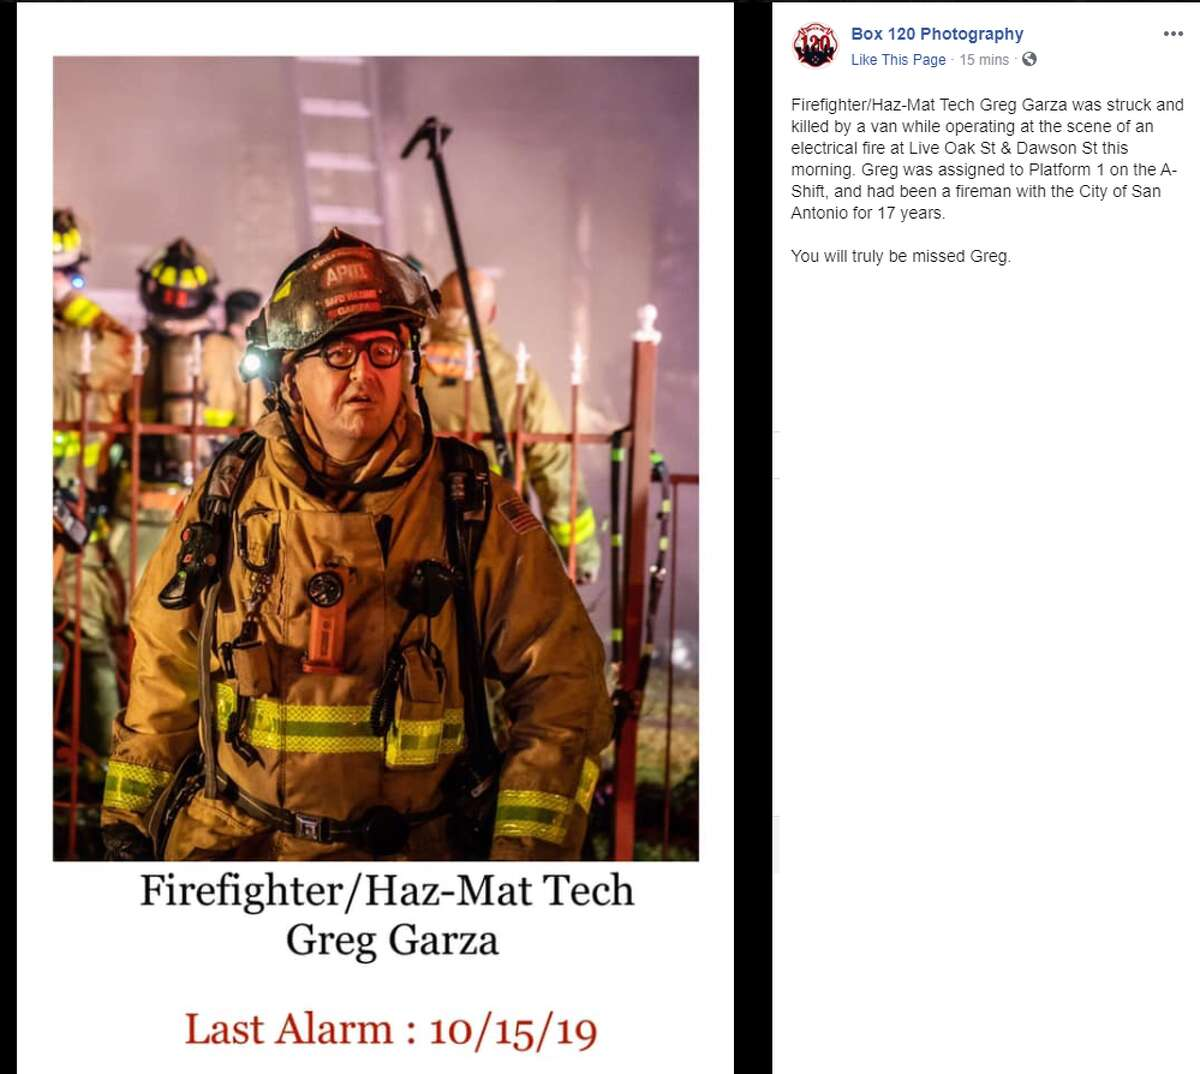 Box 120 Photography: Firefighter/Haz-Mat Tech Greg Garza was struck and killed by a van while operating at the scene of an electrical fire at Live Oak St & Dawson St this morning. Greg was assigned to Platform 1 on the A-Shift, and had been a fireman with the City of San Antonio for 17 years. You will truly be missed Greg.